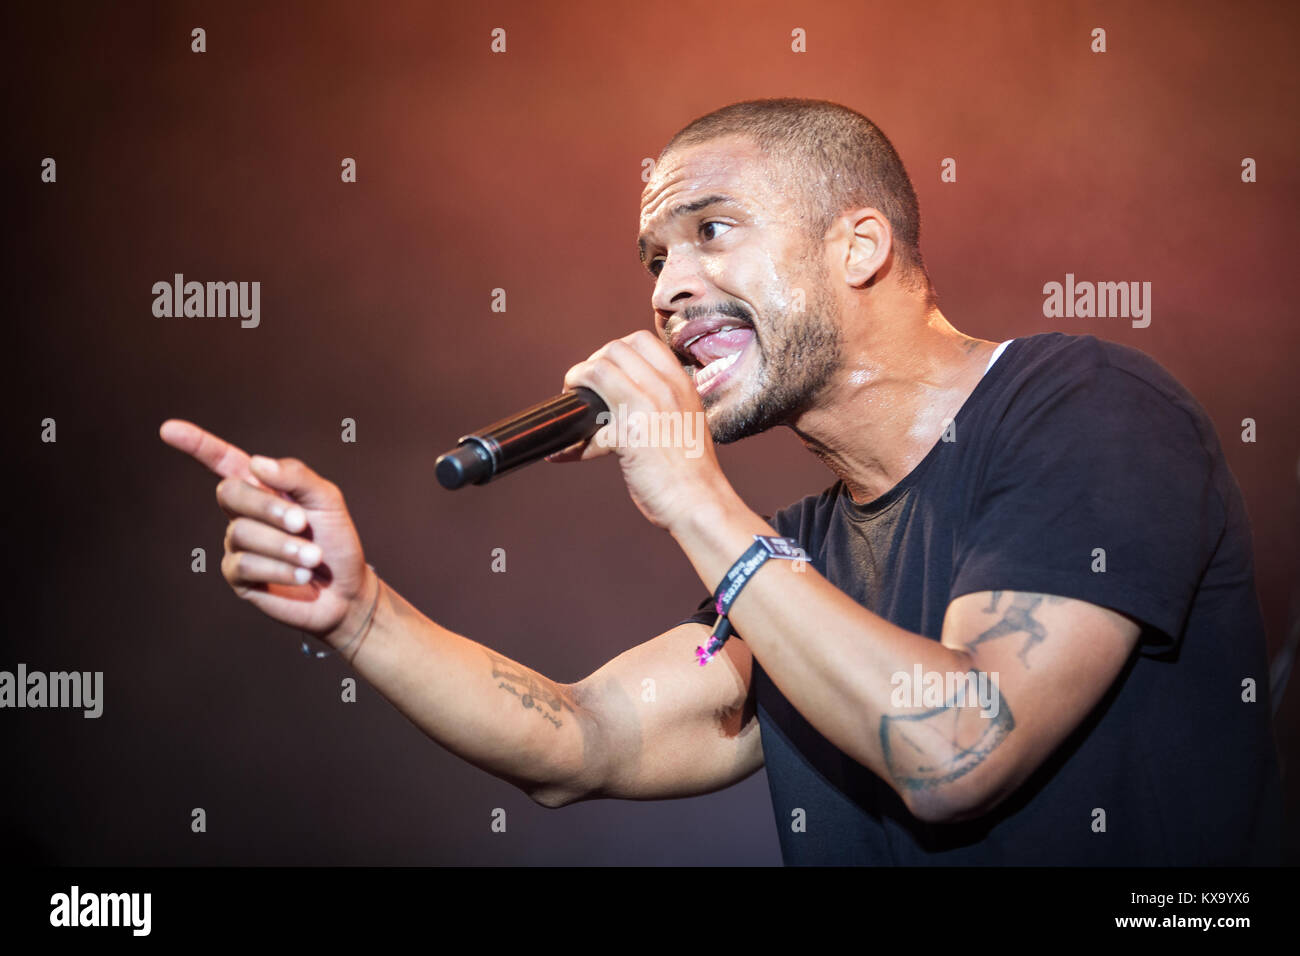 The popular Danish musician, songwriter and rapper Shaka Loveless performs a live concert at the Danish music festival - Stock Image